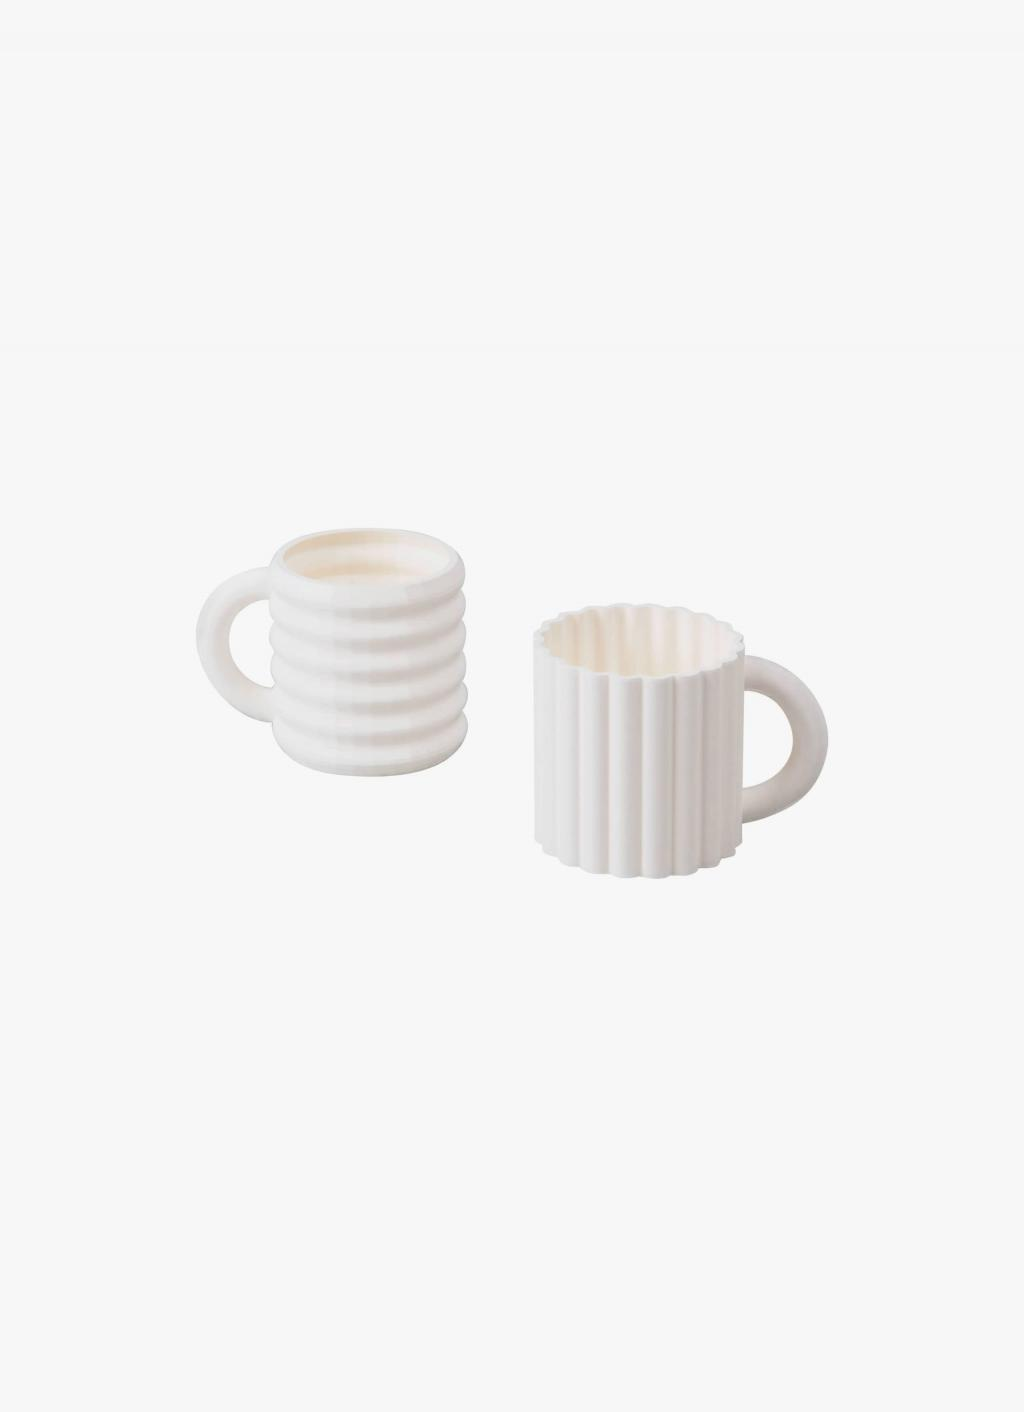 Bilge Nur Saltik - Ripple Espresso Cups - Set of two